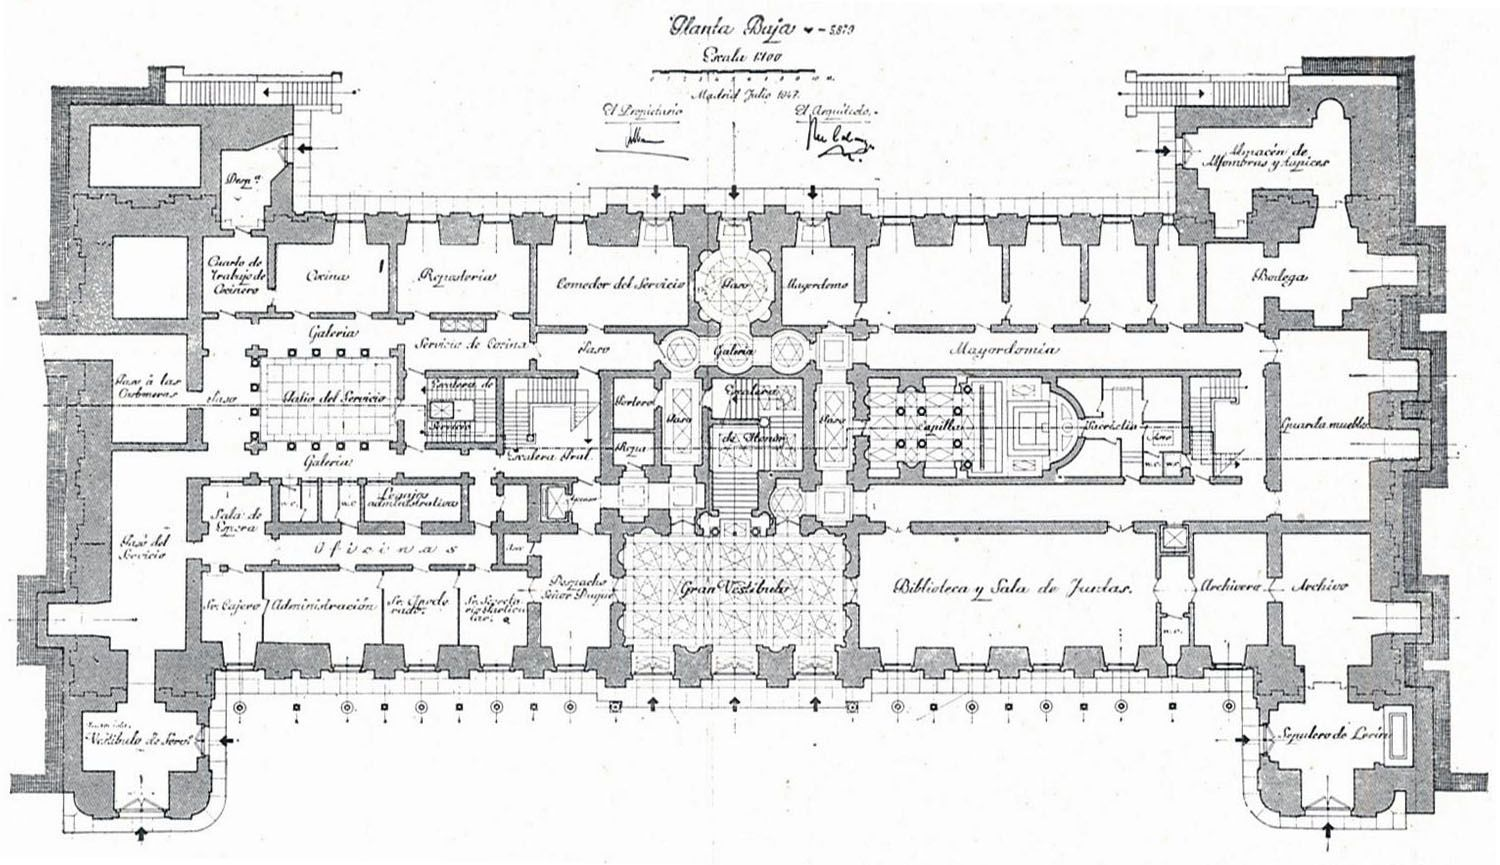 Mansion House Plans  17 Best images about palacio de liria on Pinterest  Pets Multimedia and Entrance  17 Best. Mansion House Plans 8 Bedrooms  universalcouncil info